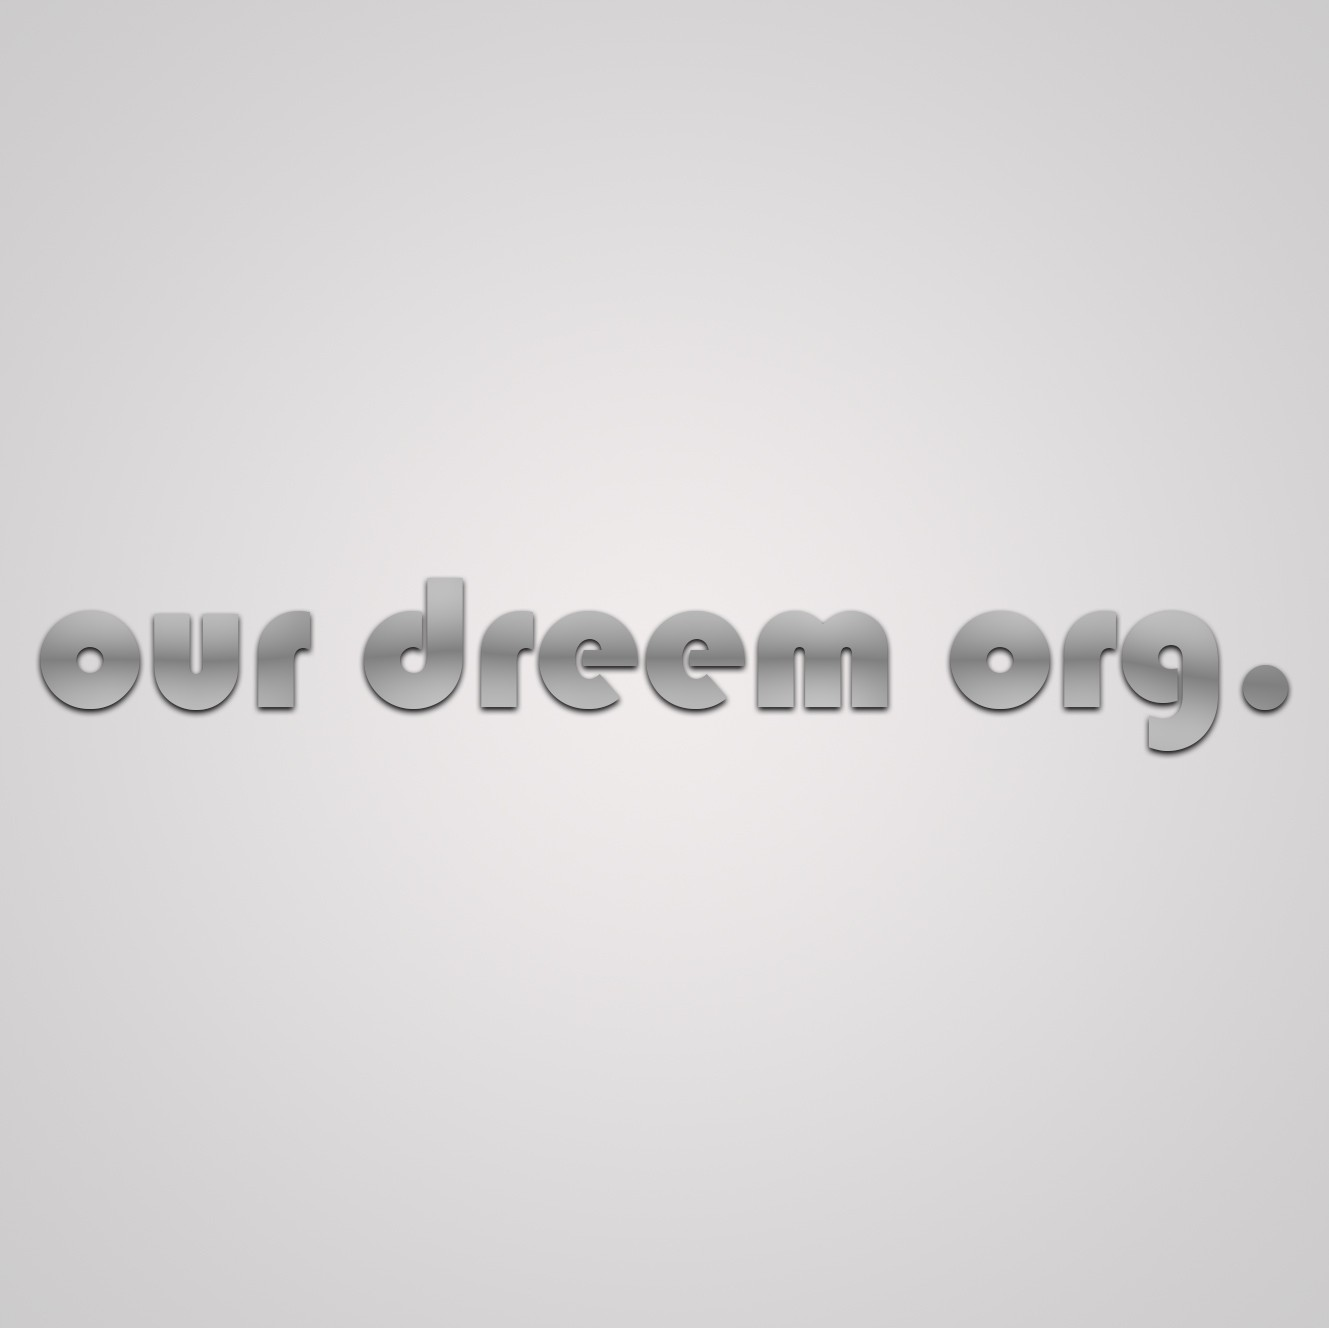 Our Dream's logo